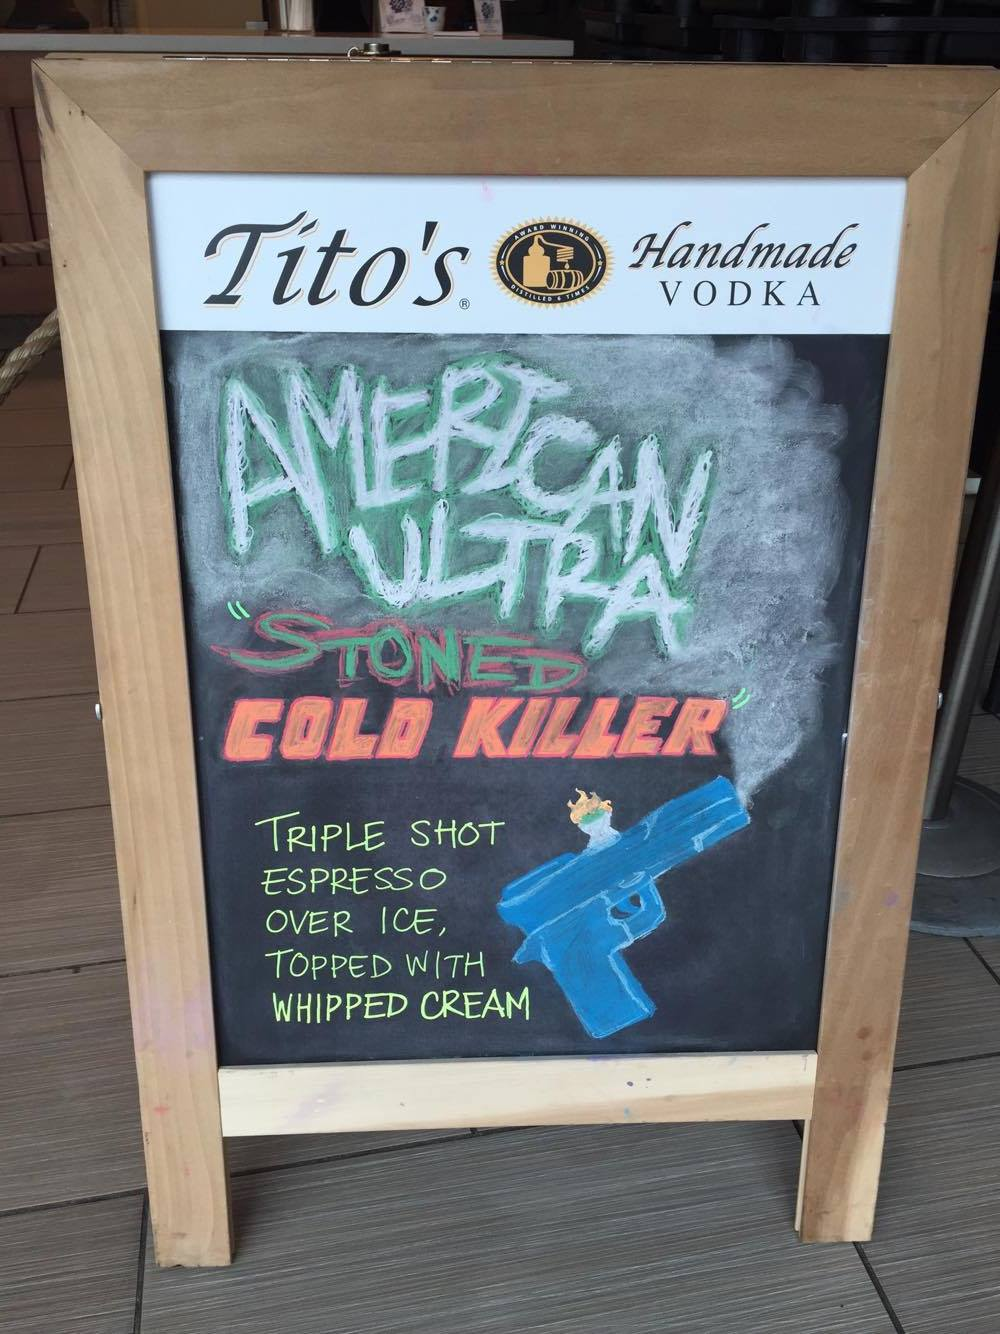 Stoned Cold Killer